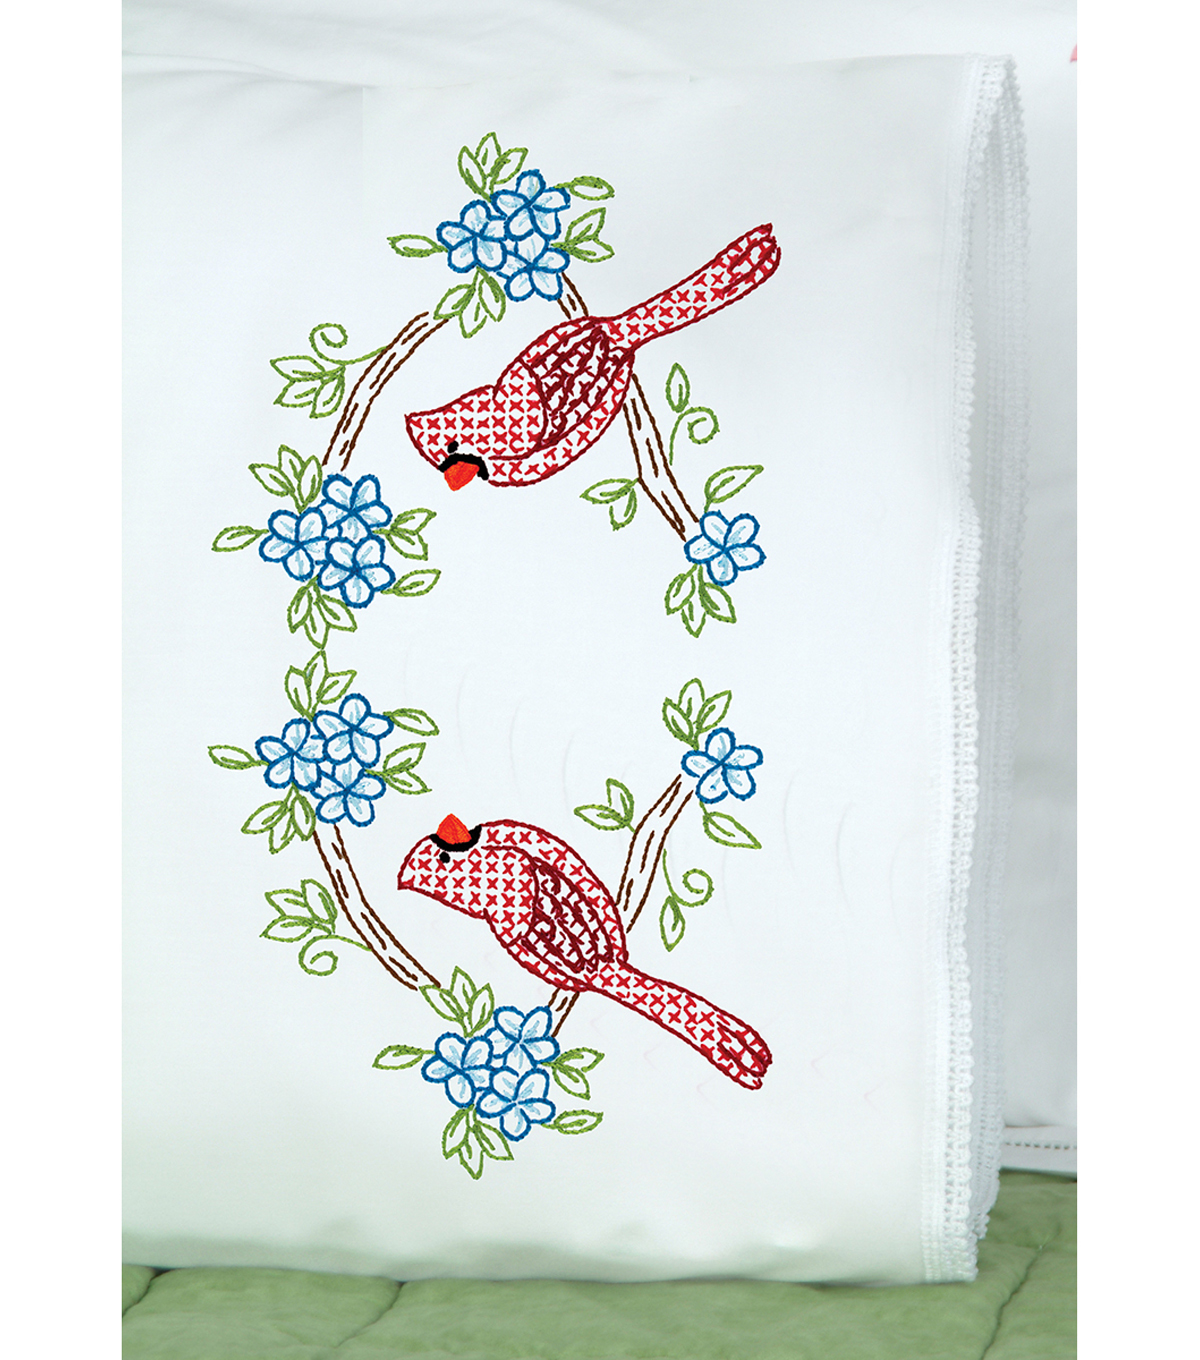 Stamped Pillowcases W/White Lace Edge 2 Pack-Cardinal